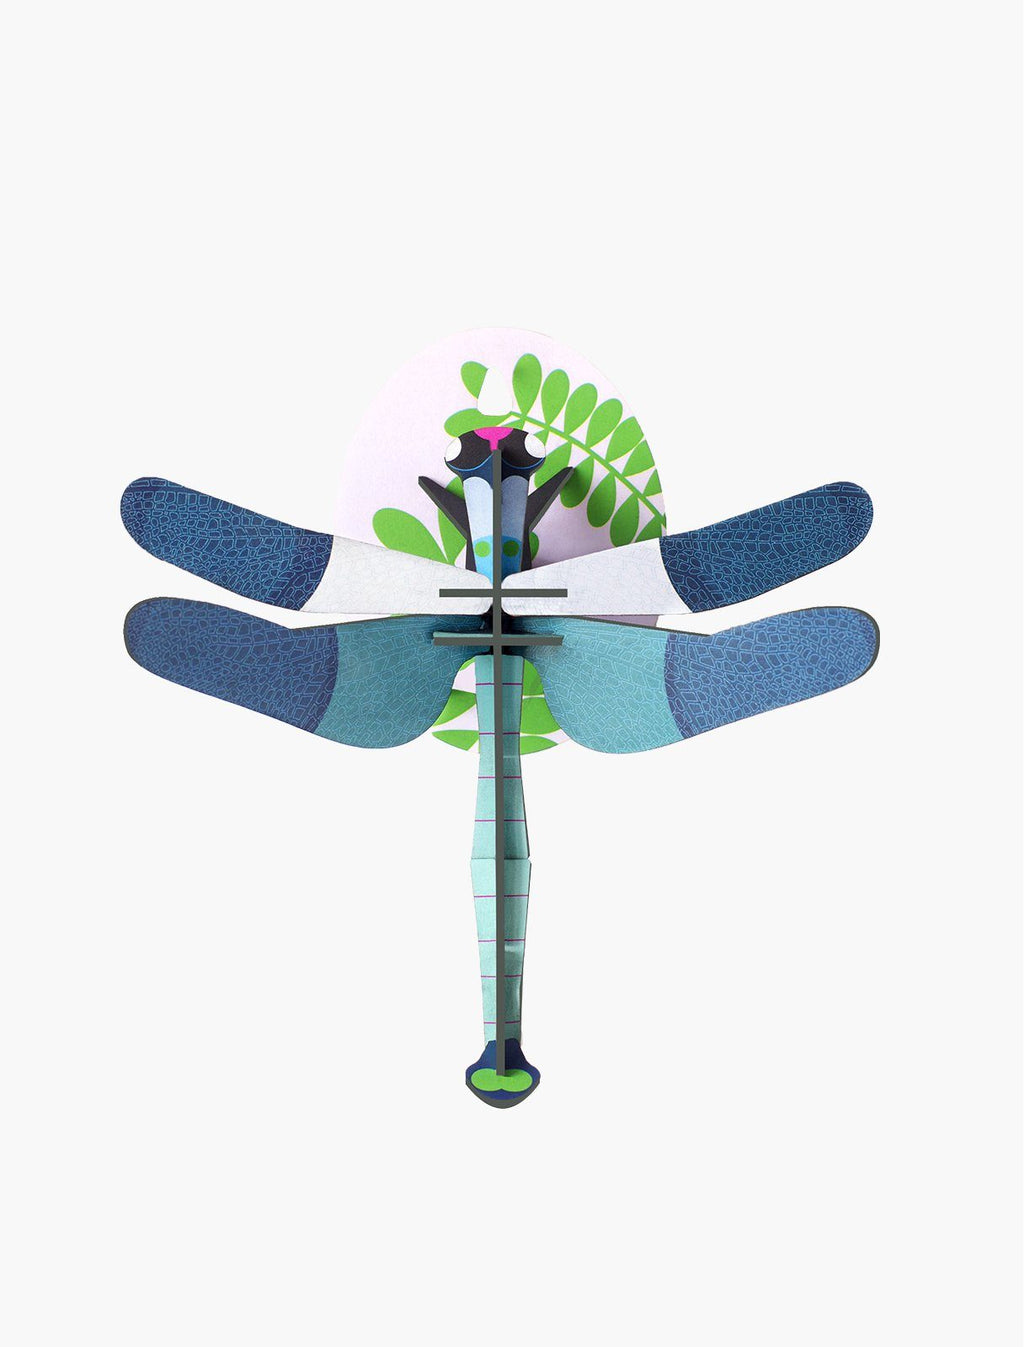 Blue Dragonfly (Arriving Late March) Studio Roof